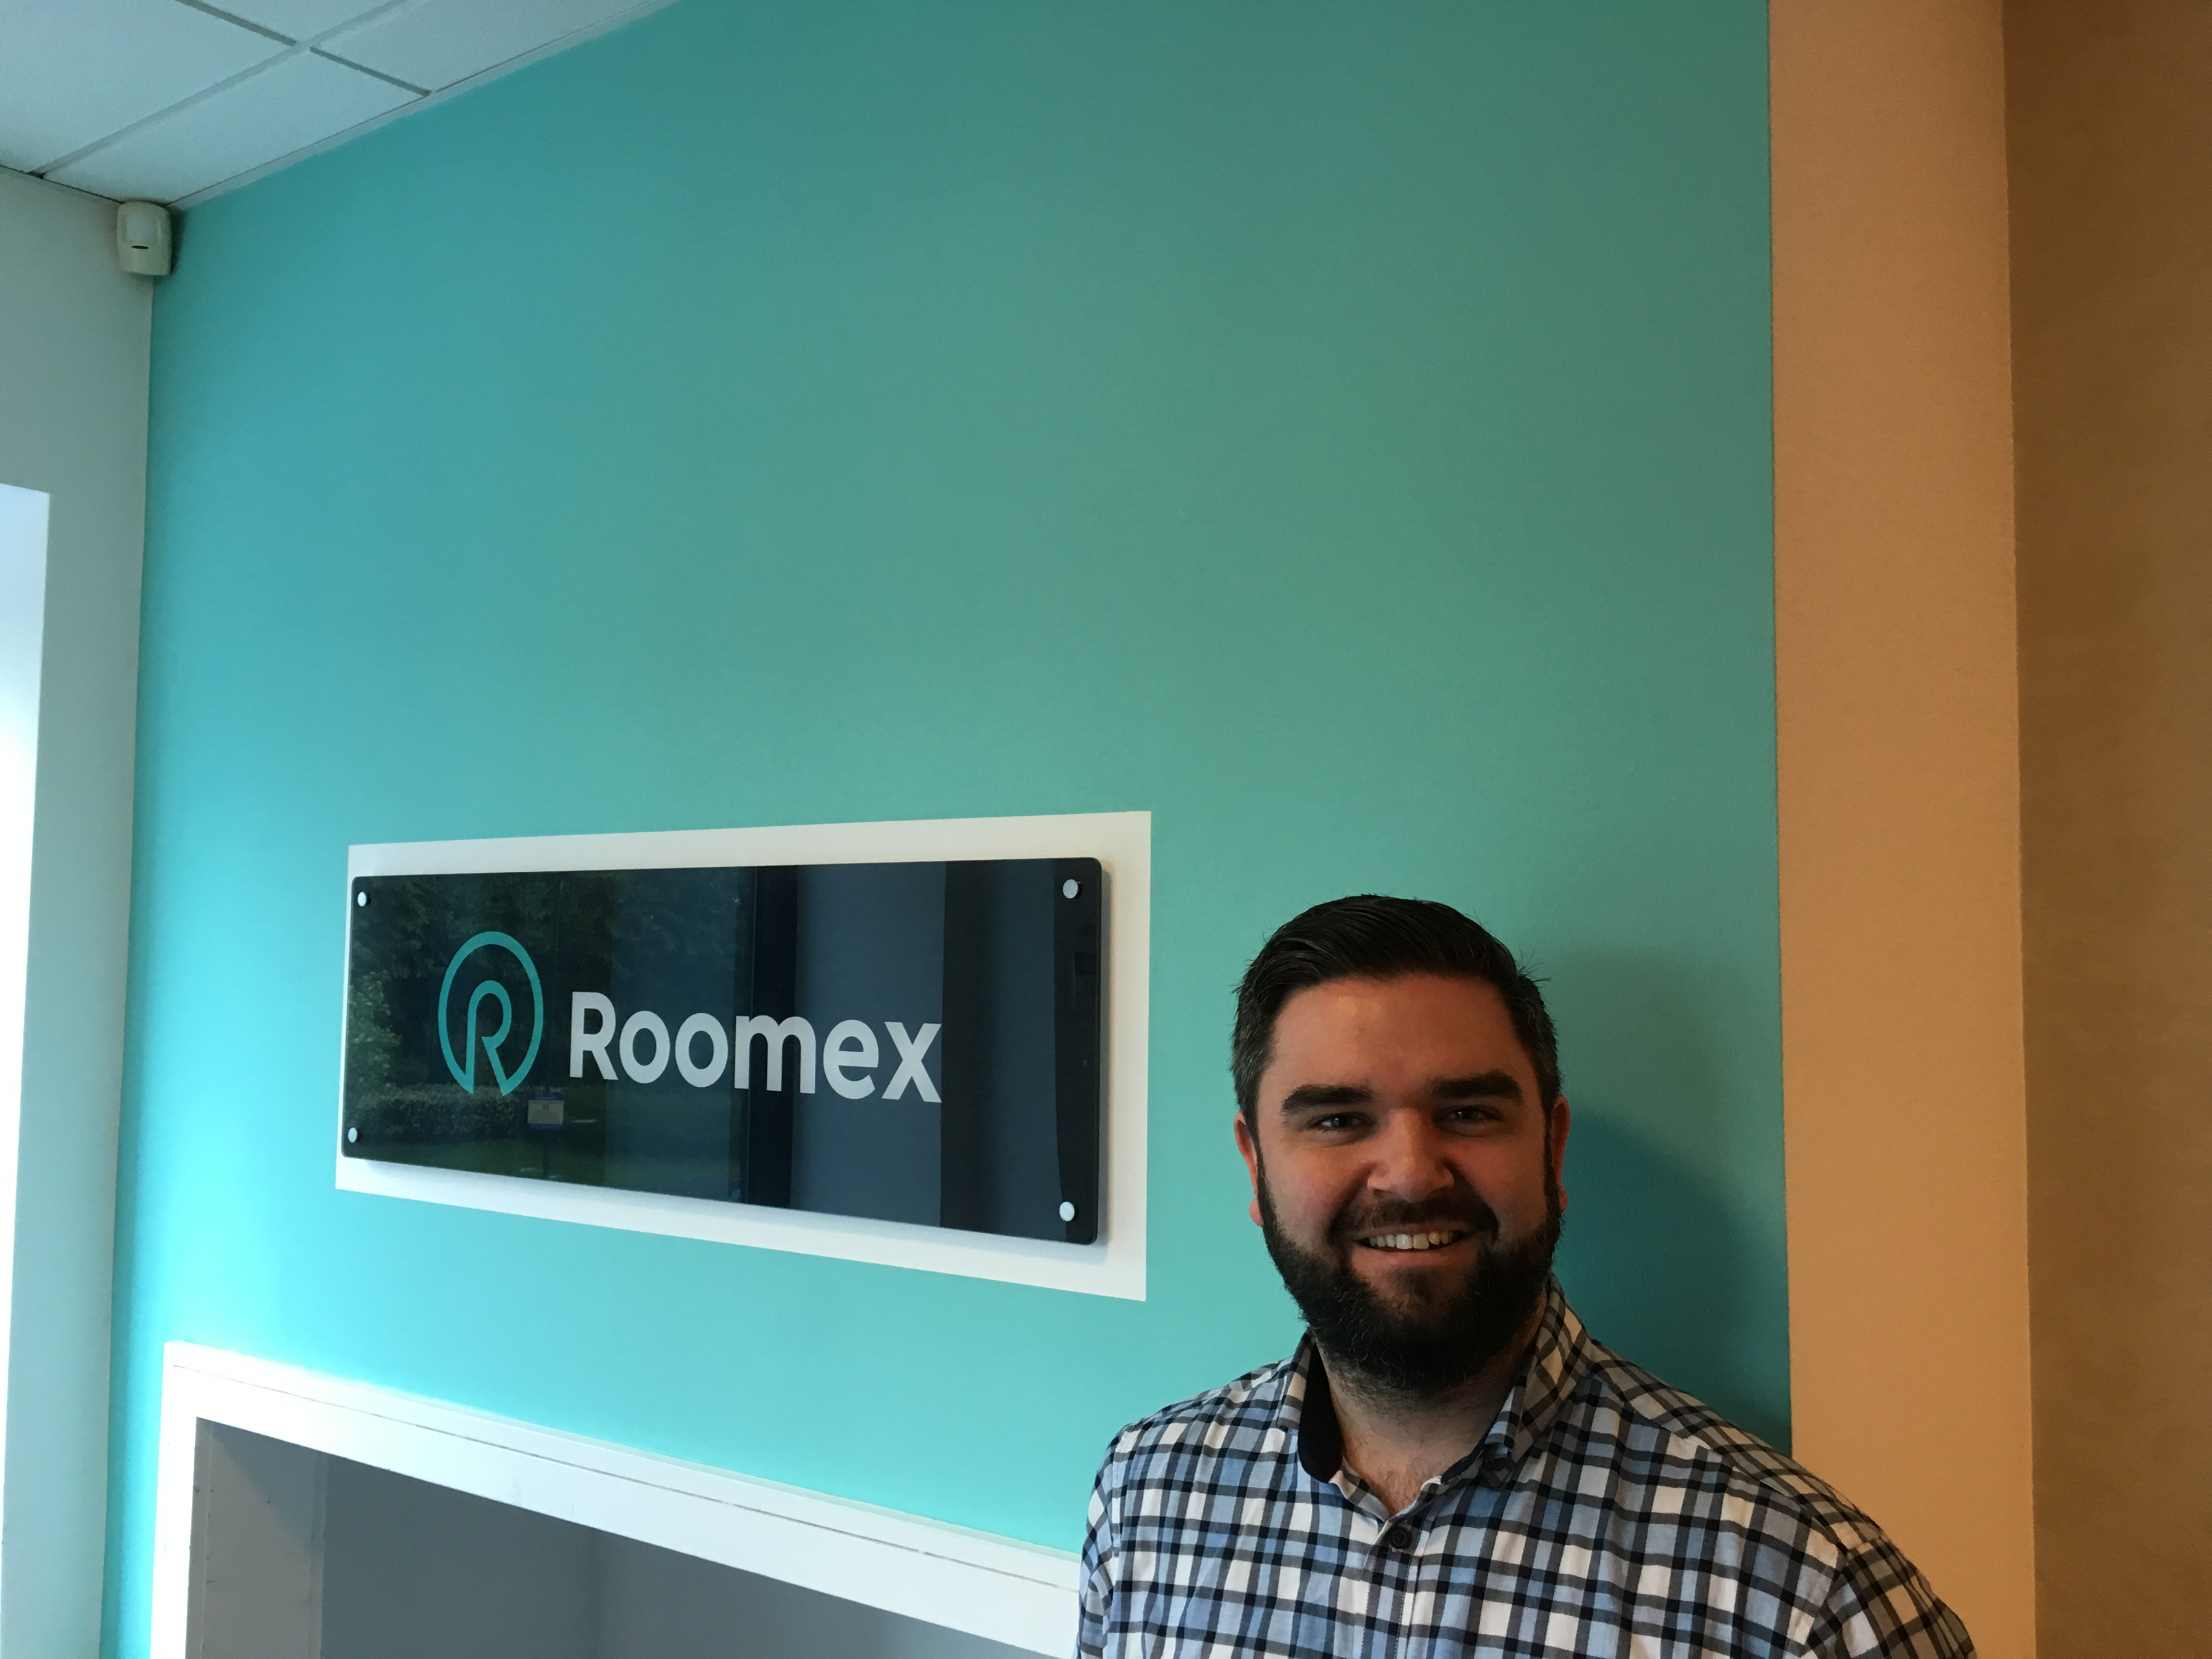 Coffeebreak chat with Aaron Doherty, Roomex Agile Product Owner